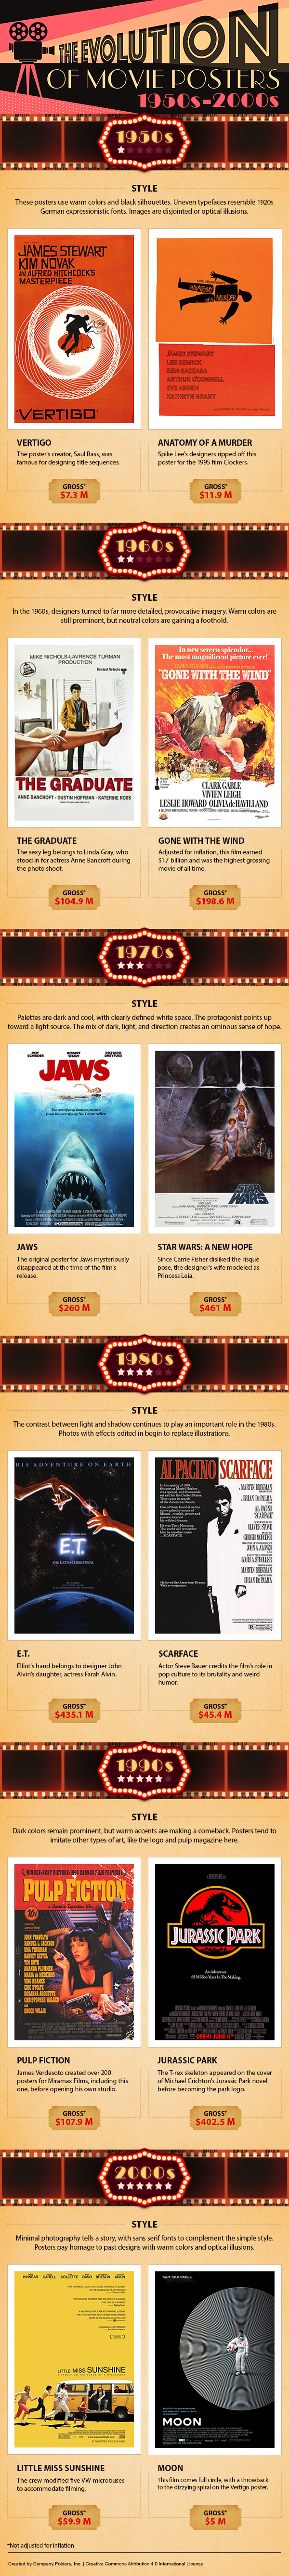 The Magic of Movie Posters: Styles and Designs from 1950s – 2000s - Infographic